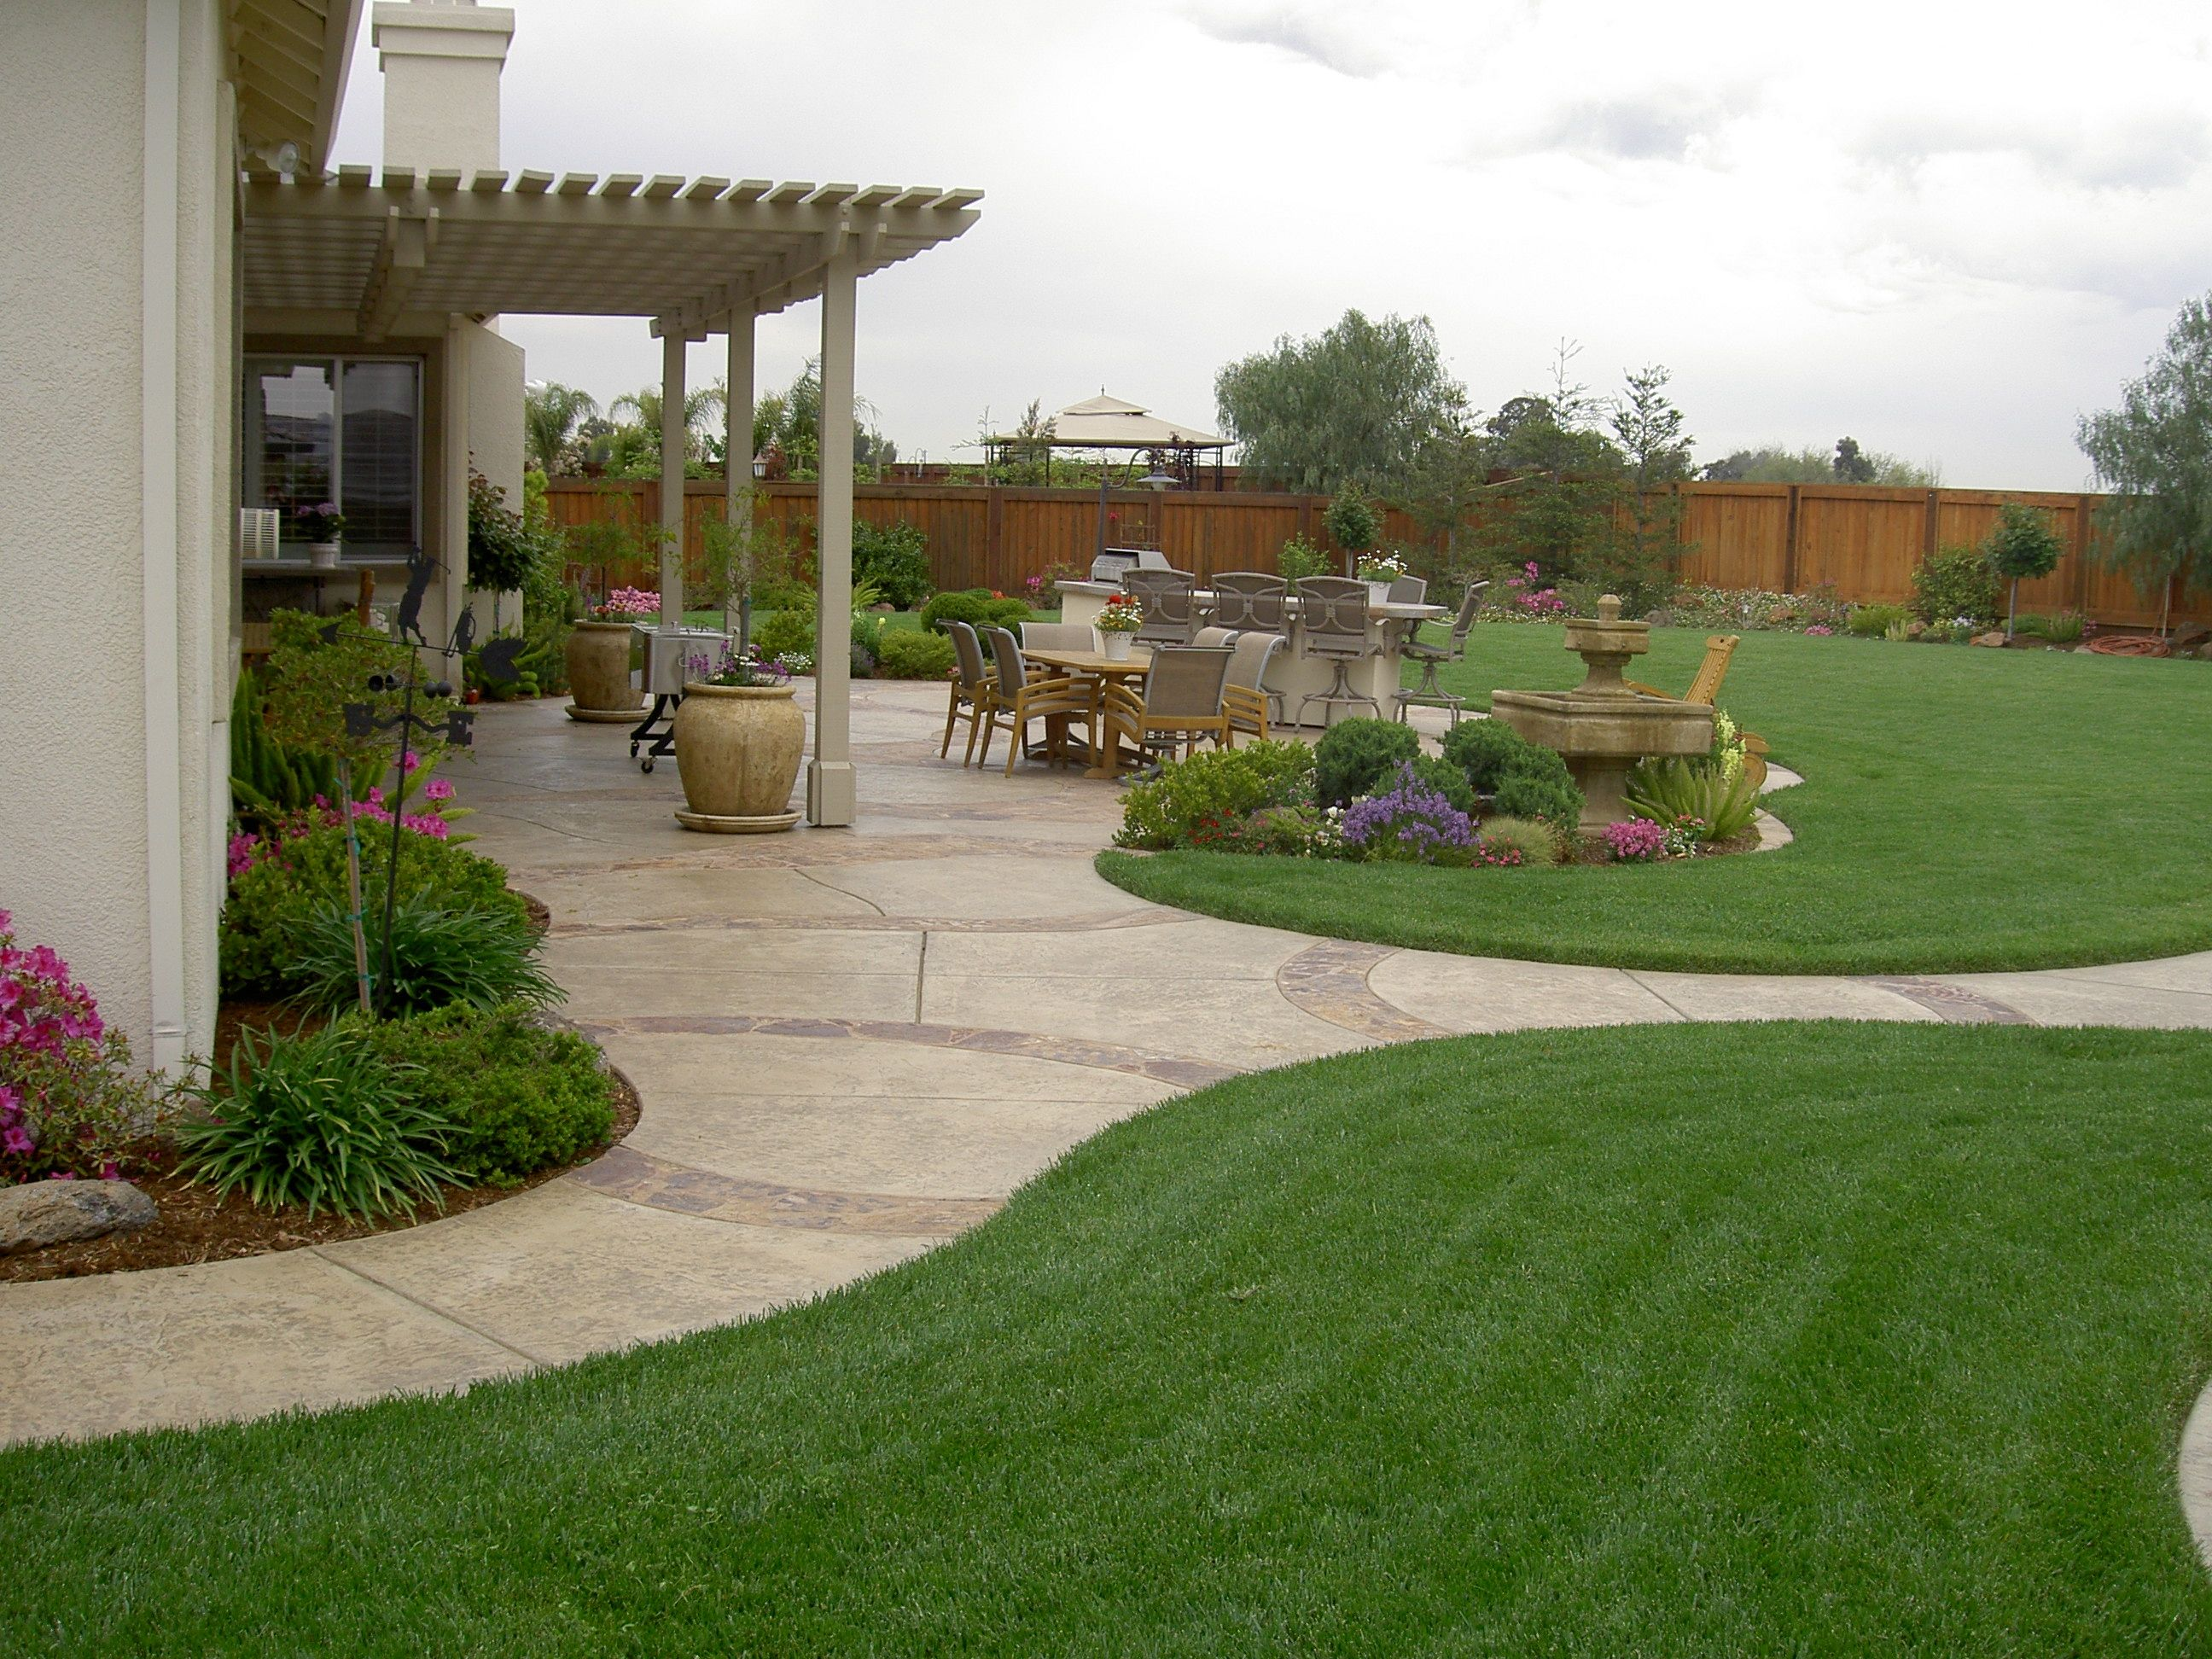 Superieur Backyard Landscaping Design. Backyard Ideas More Landscaping Design  Pinterest